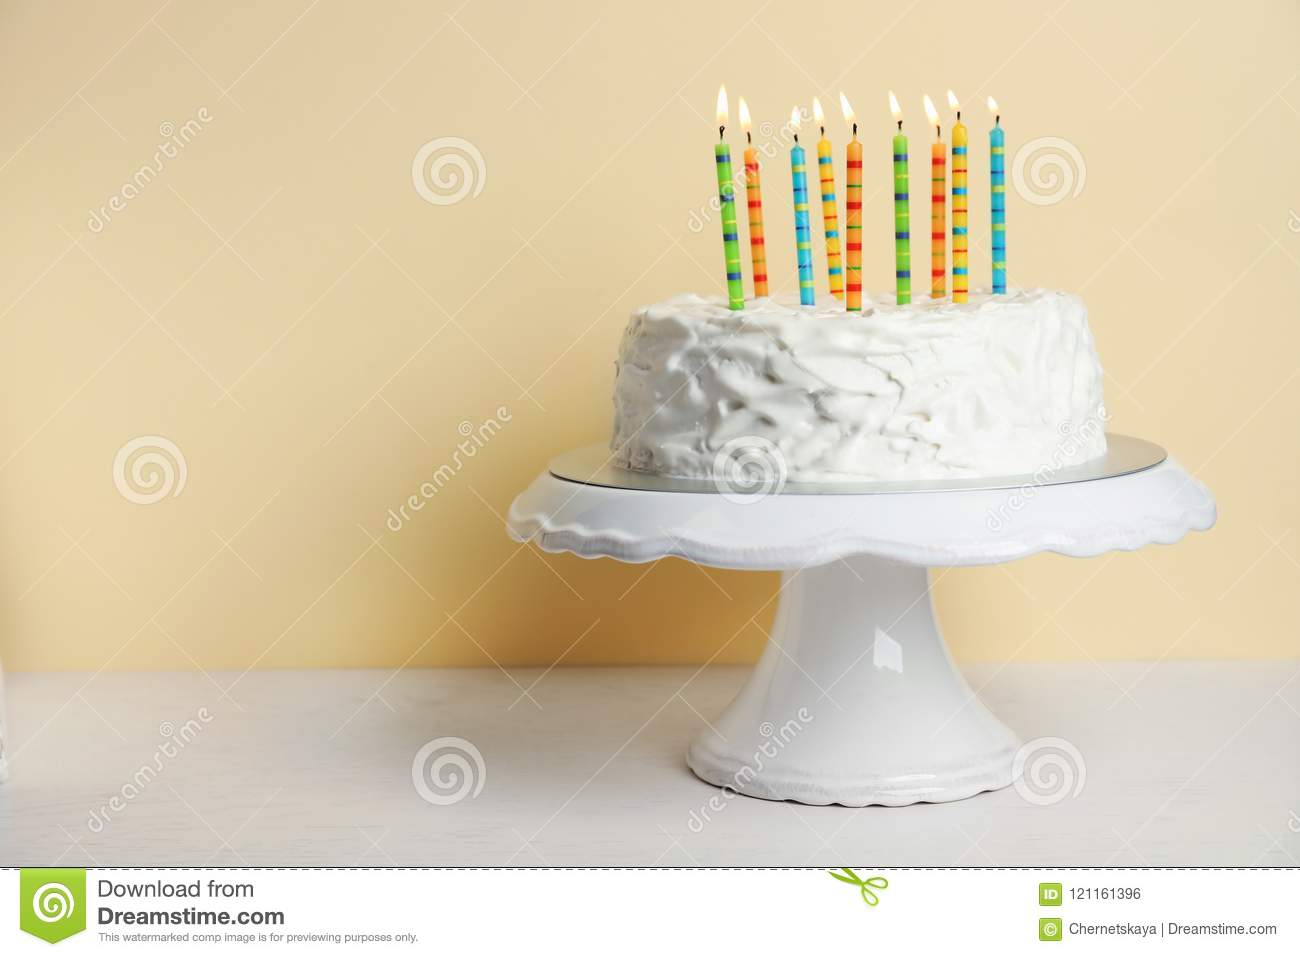 Birthday cake with candles on table